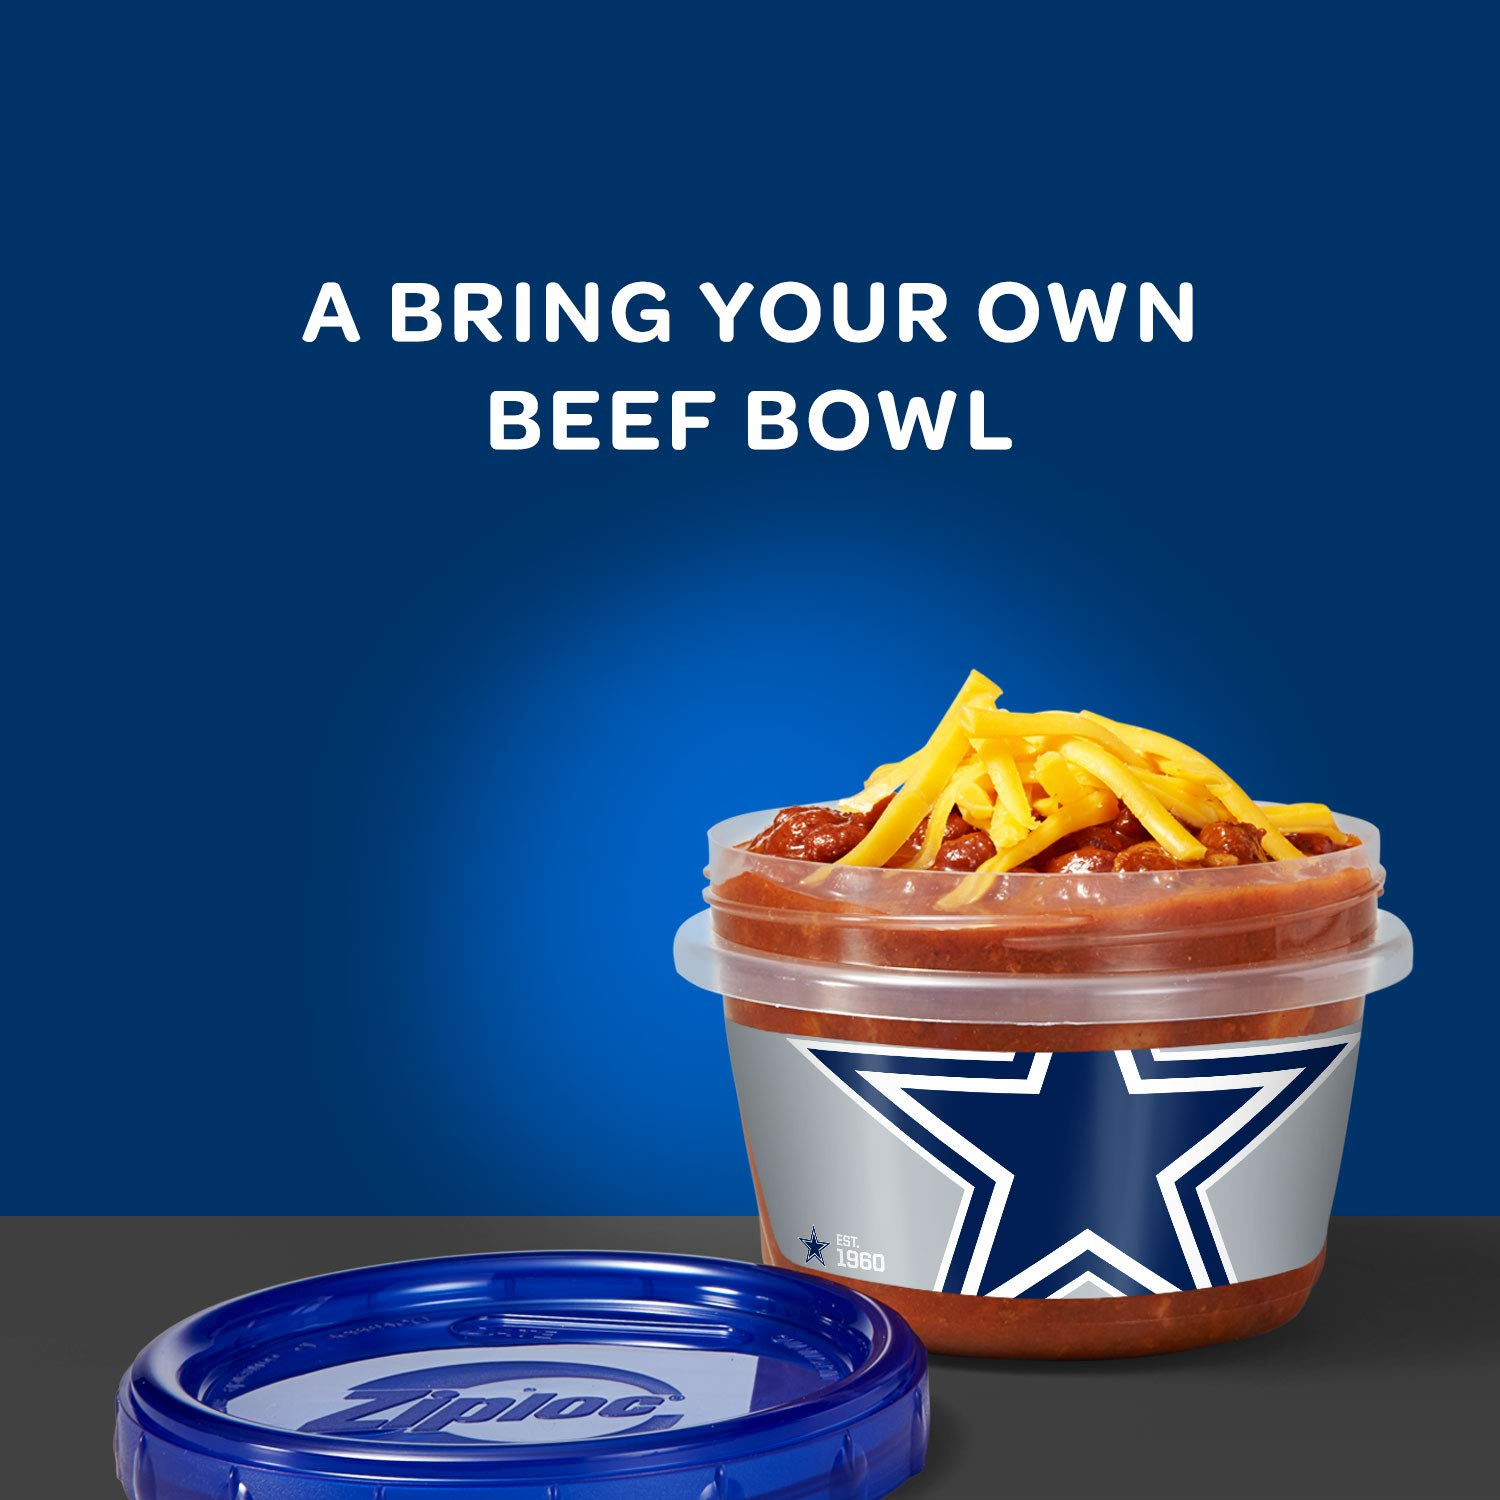 Amazon.com : Ziploc Brand NFL Dallas Cowboys Twist n Loc Containers, Small, 2 ct, 3 pack : Grocery & Gourmet Food